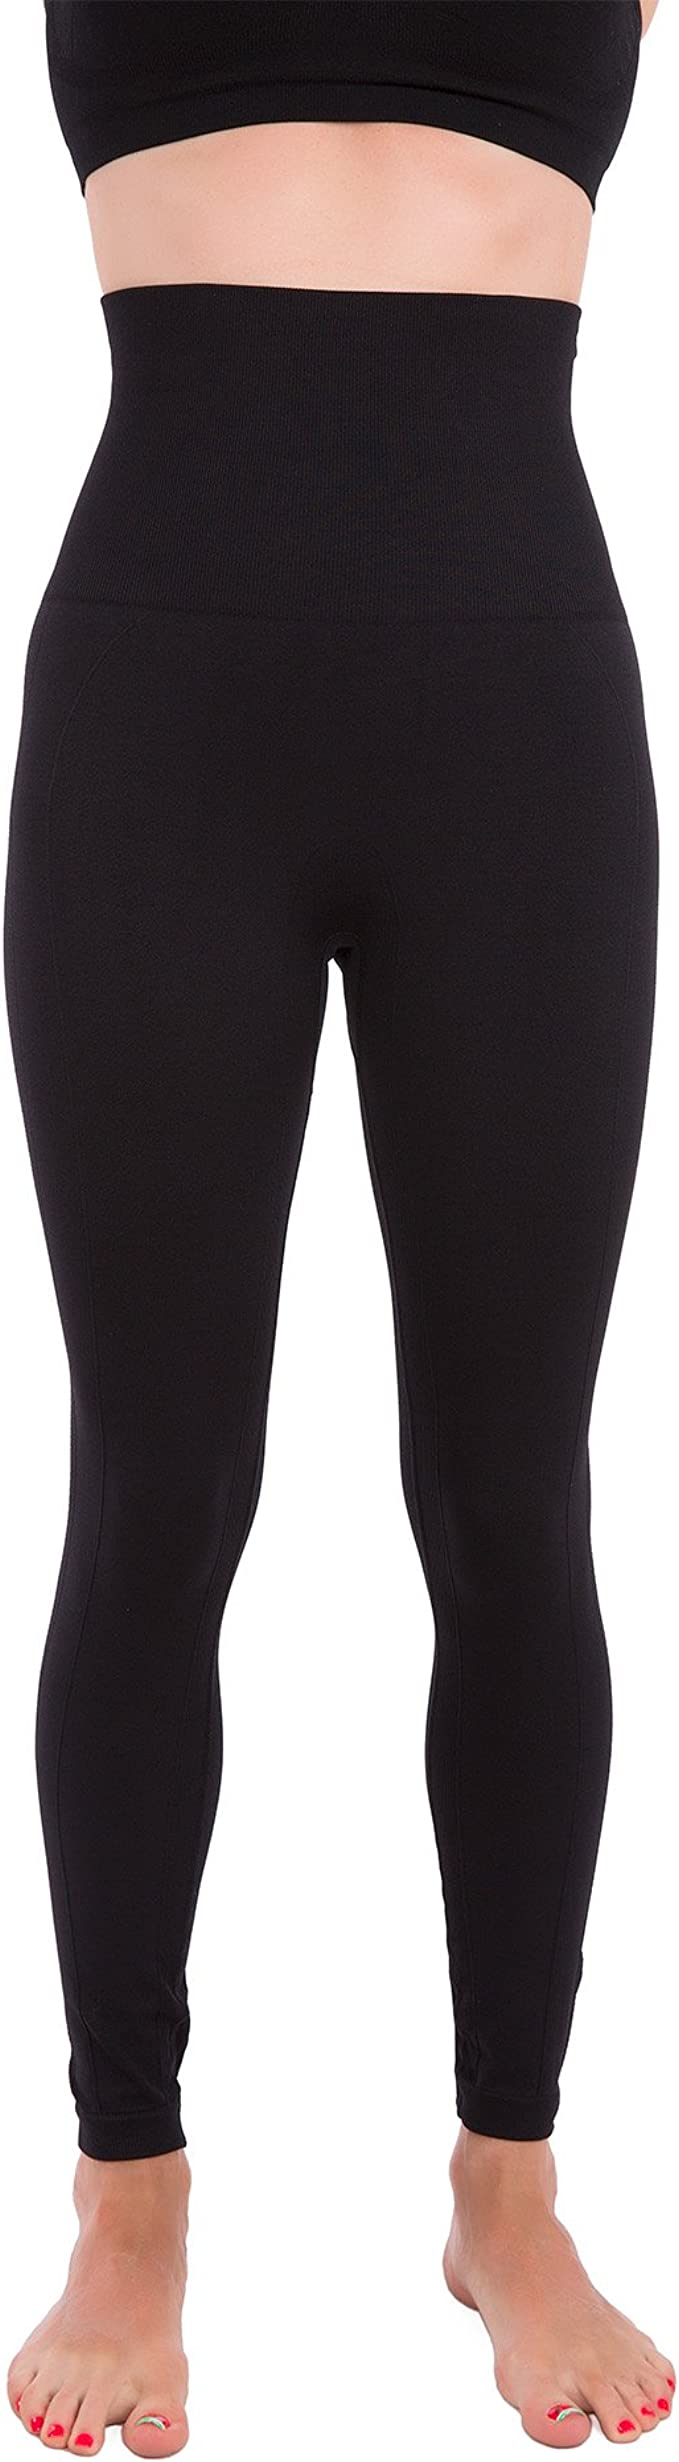 Lasting Warmth S Black GRGM Super Thick Cashmere Leggings High Waist Pants Thick Warm Pants /& Windproof and Cold